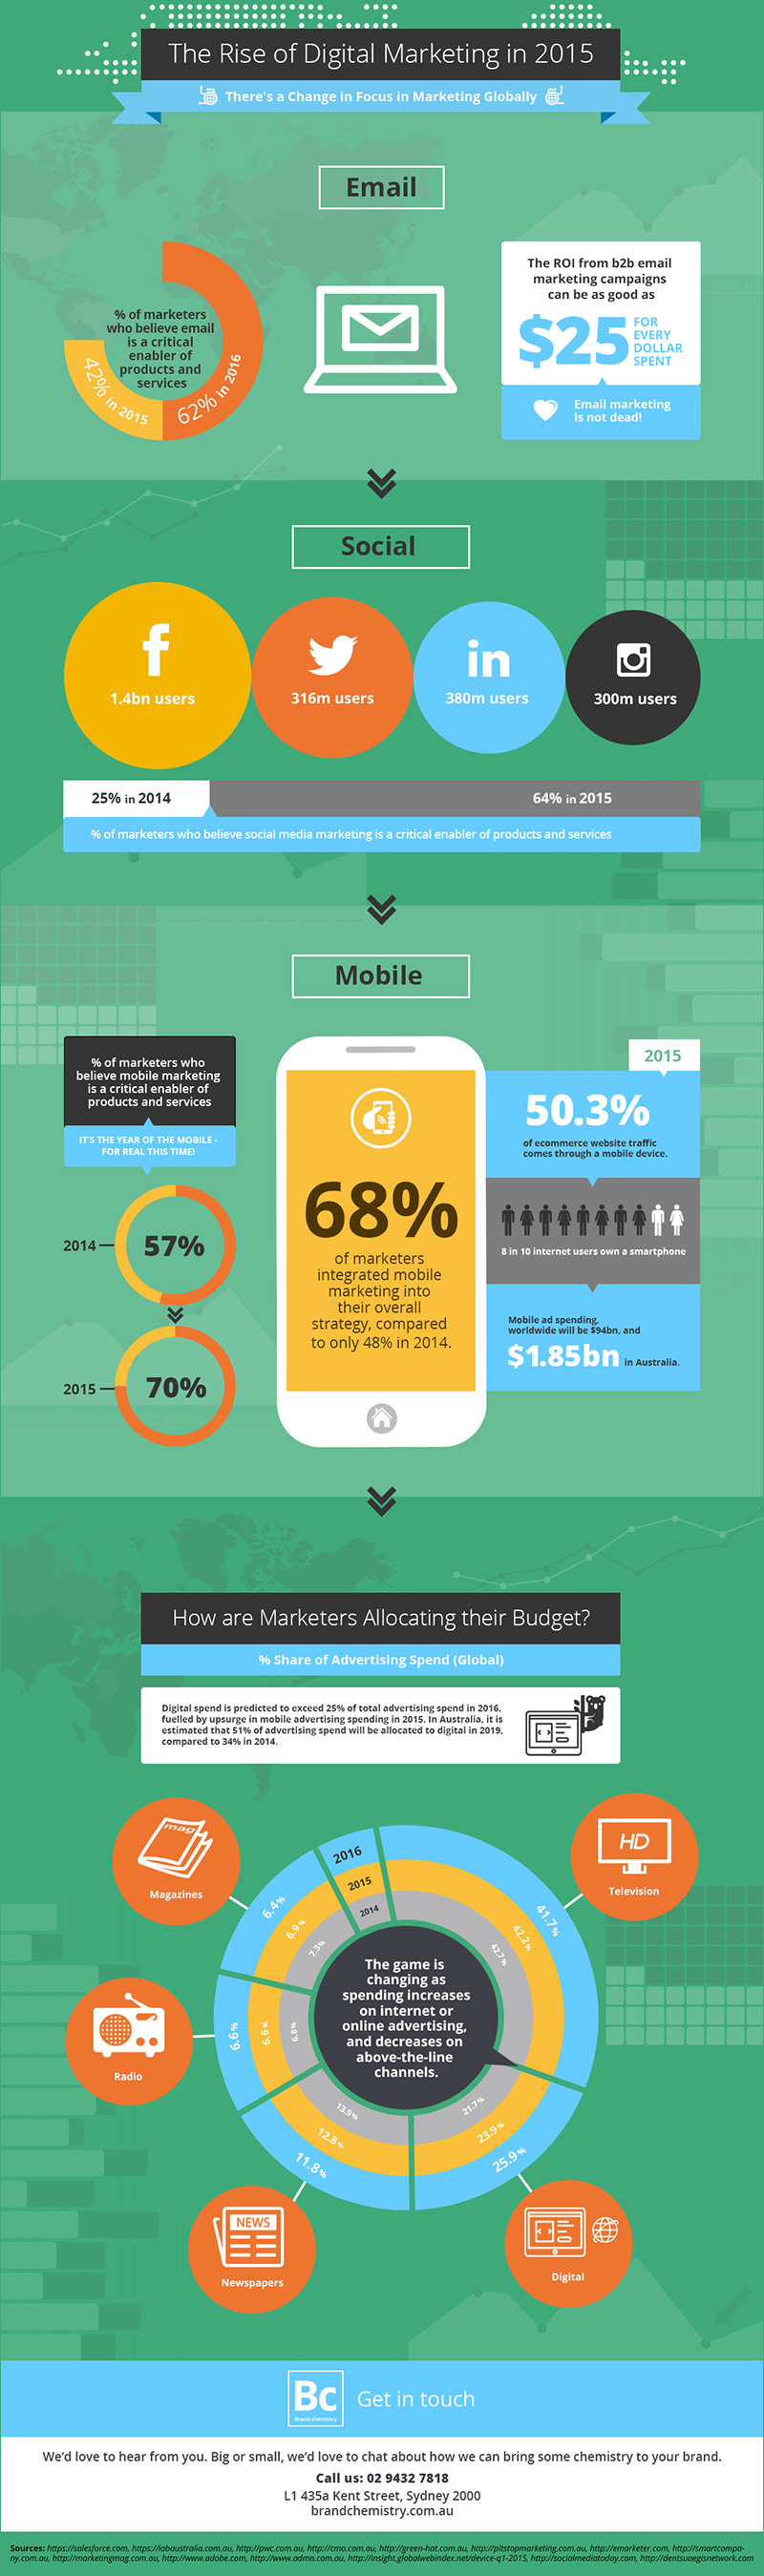 The rise of digital marketing in 2015